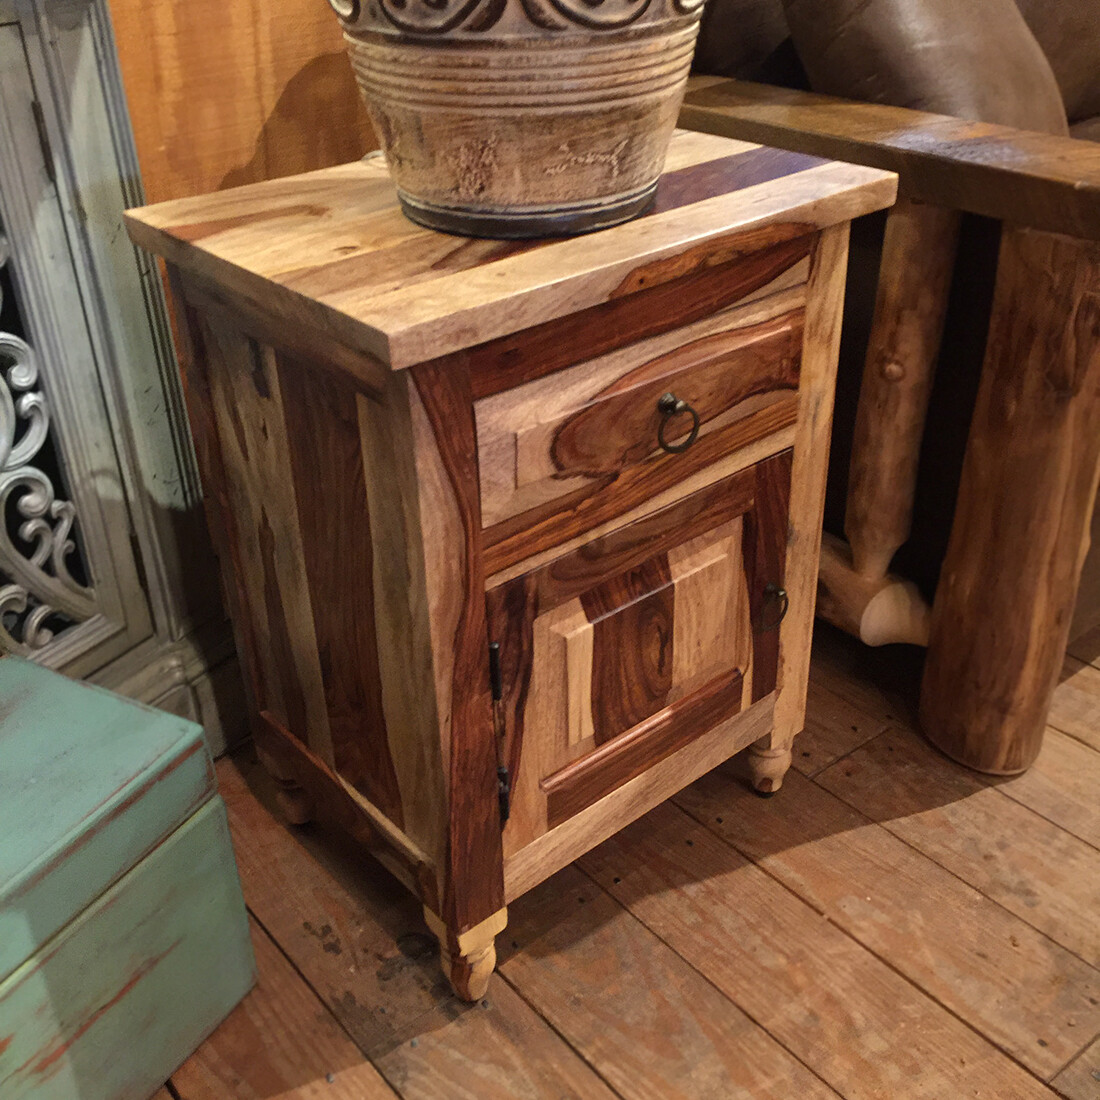 Rosewood Nightstand 20W 26H 15D